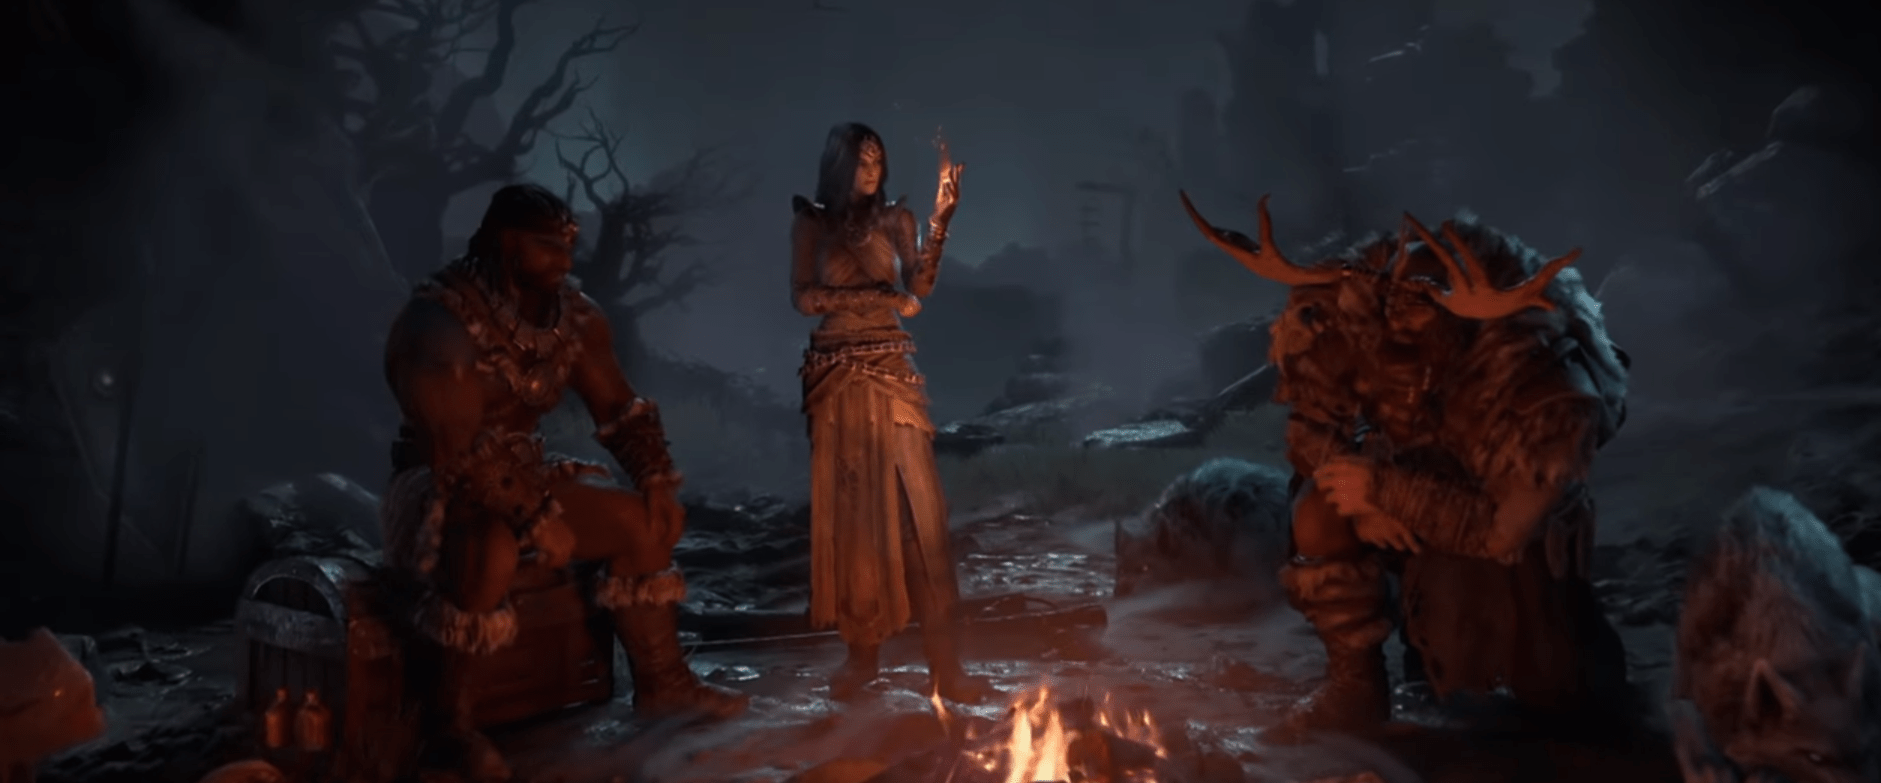 Diablo 4 – A Look At The Three Announced Classes:  Sorceress, Barbarian, And Druid